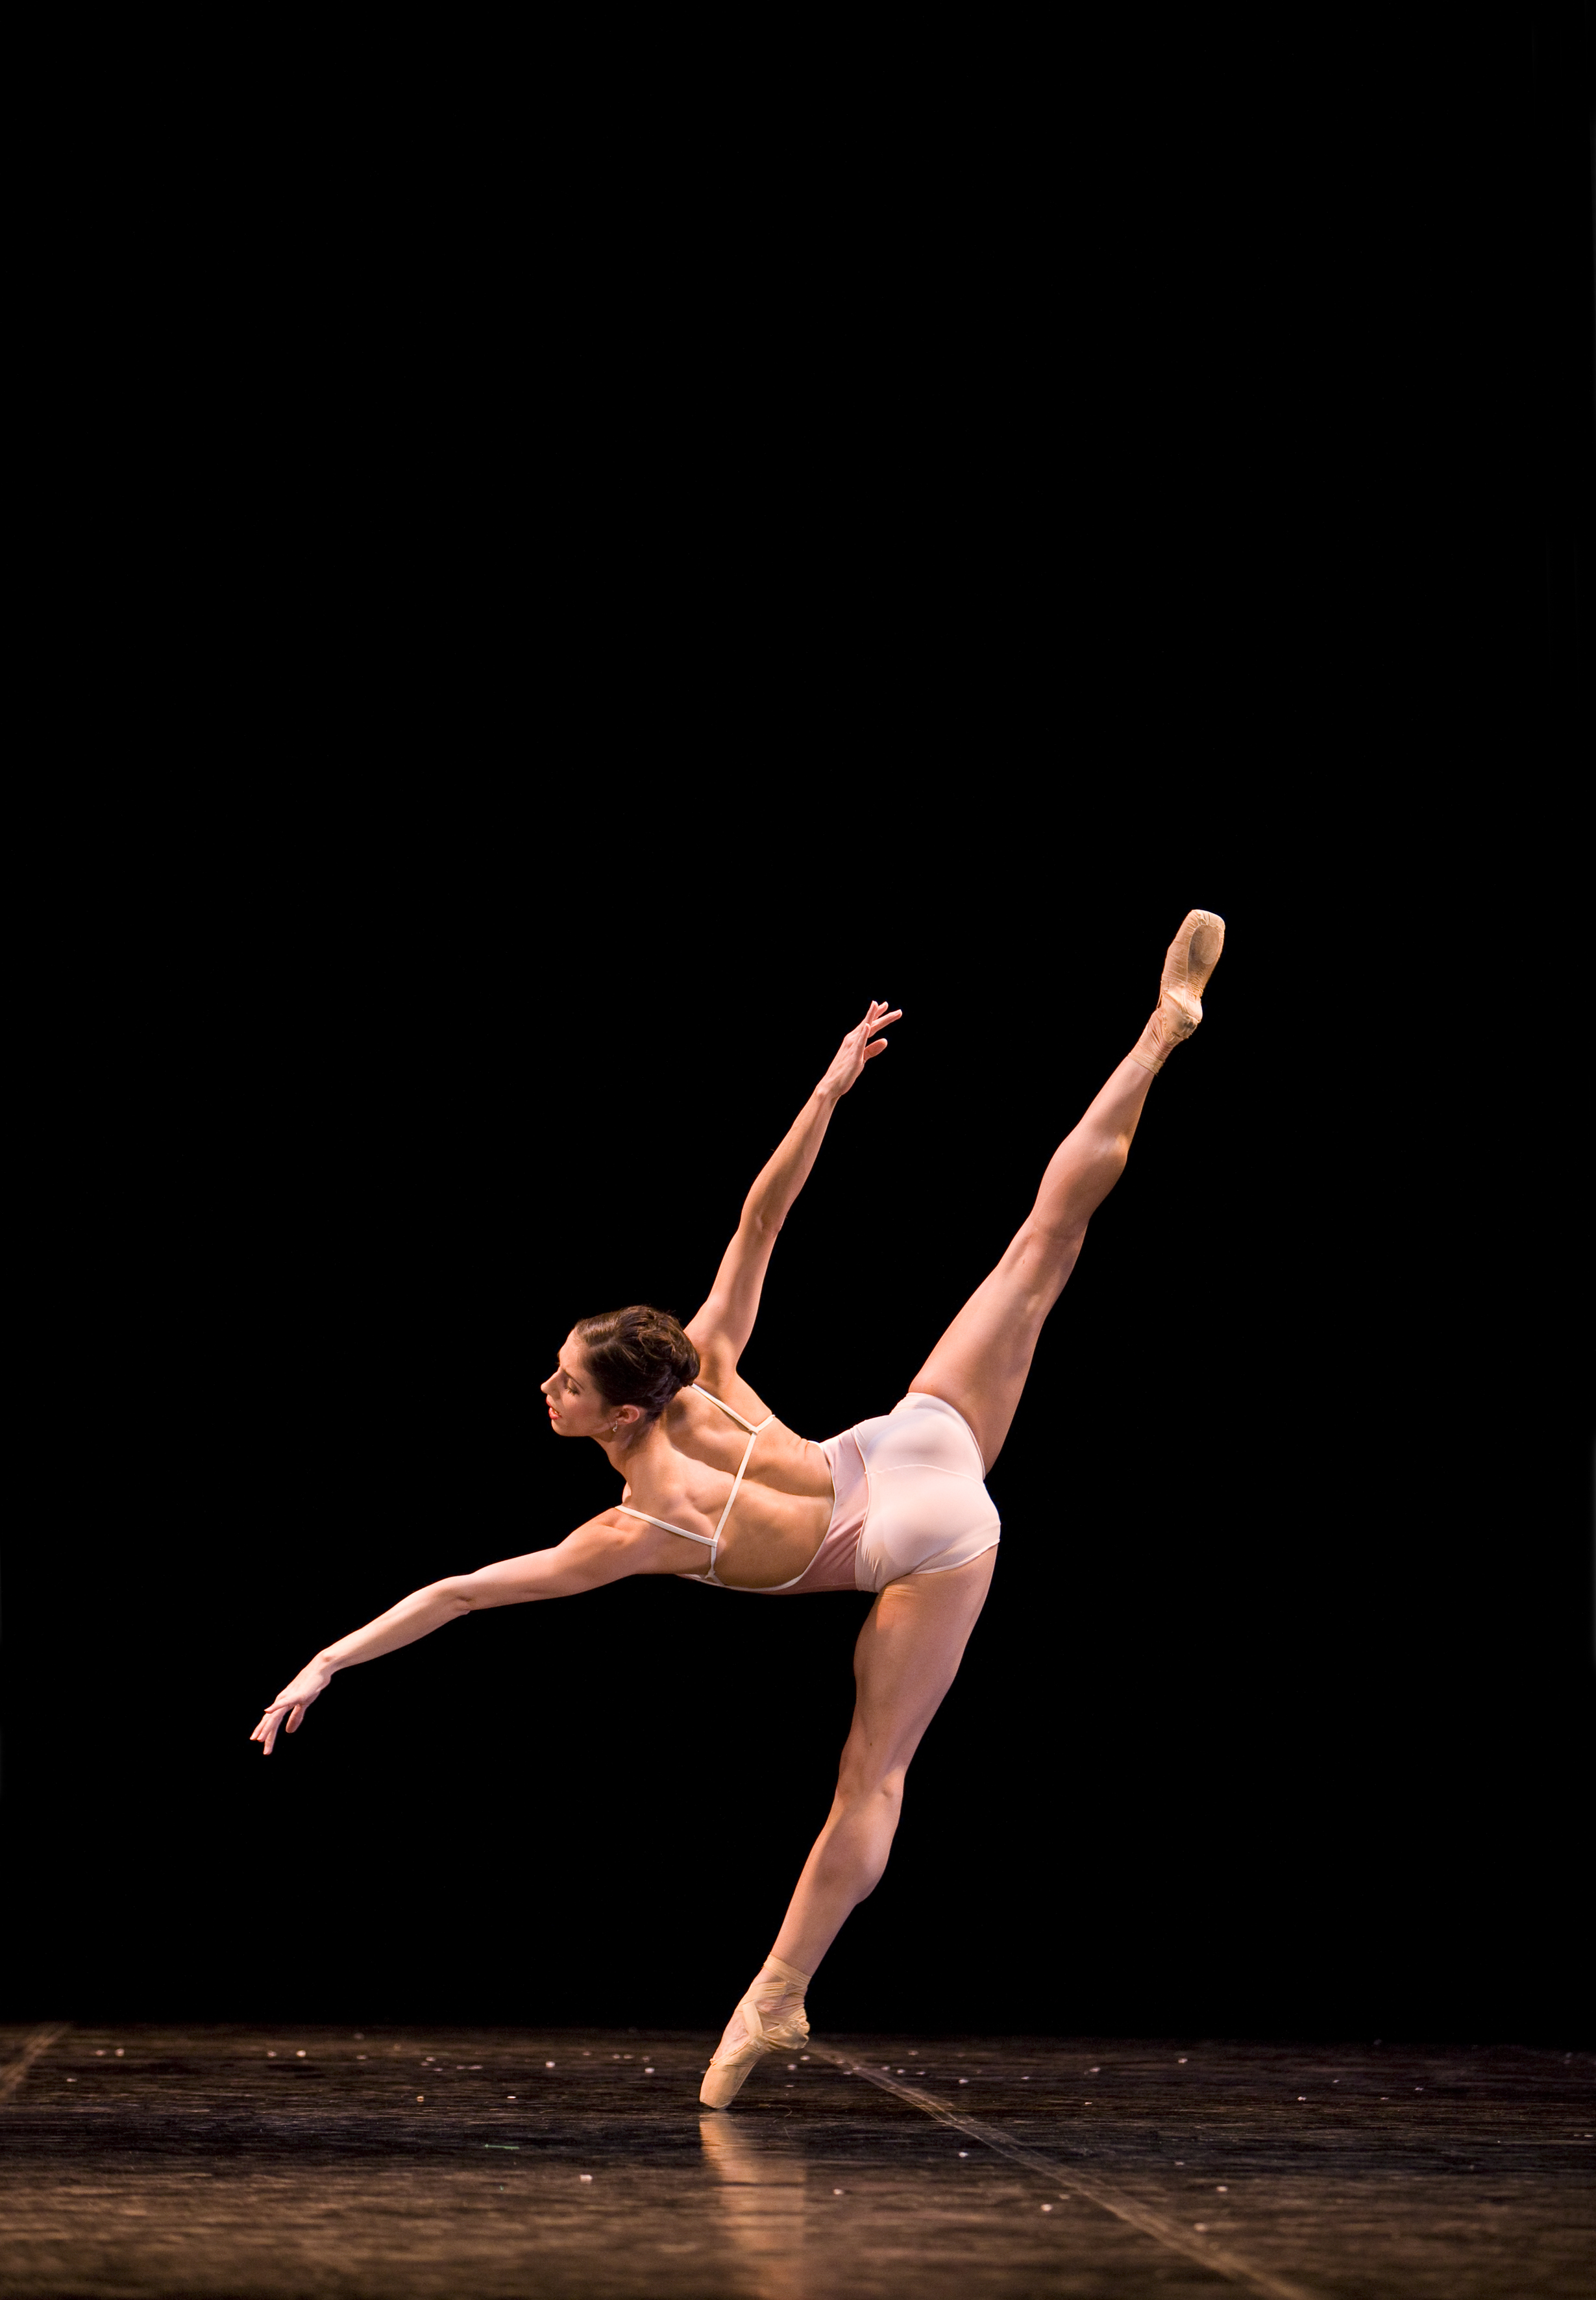 Ballet Dancers On Pointe Martha leebolt ballet dancerBallet Dancers On Pointe